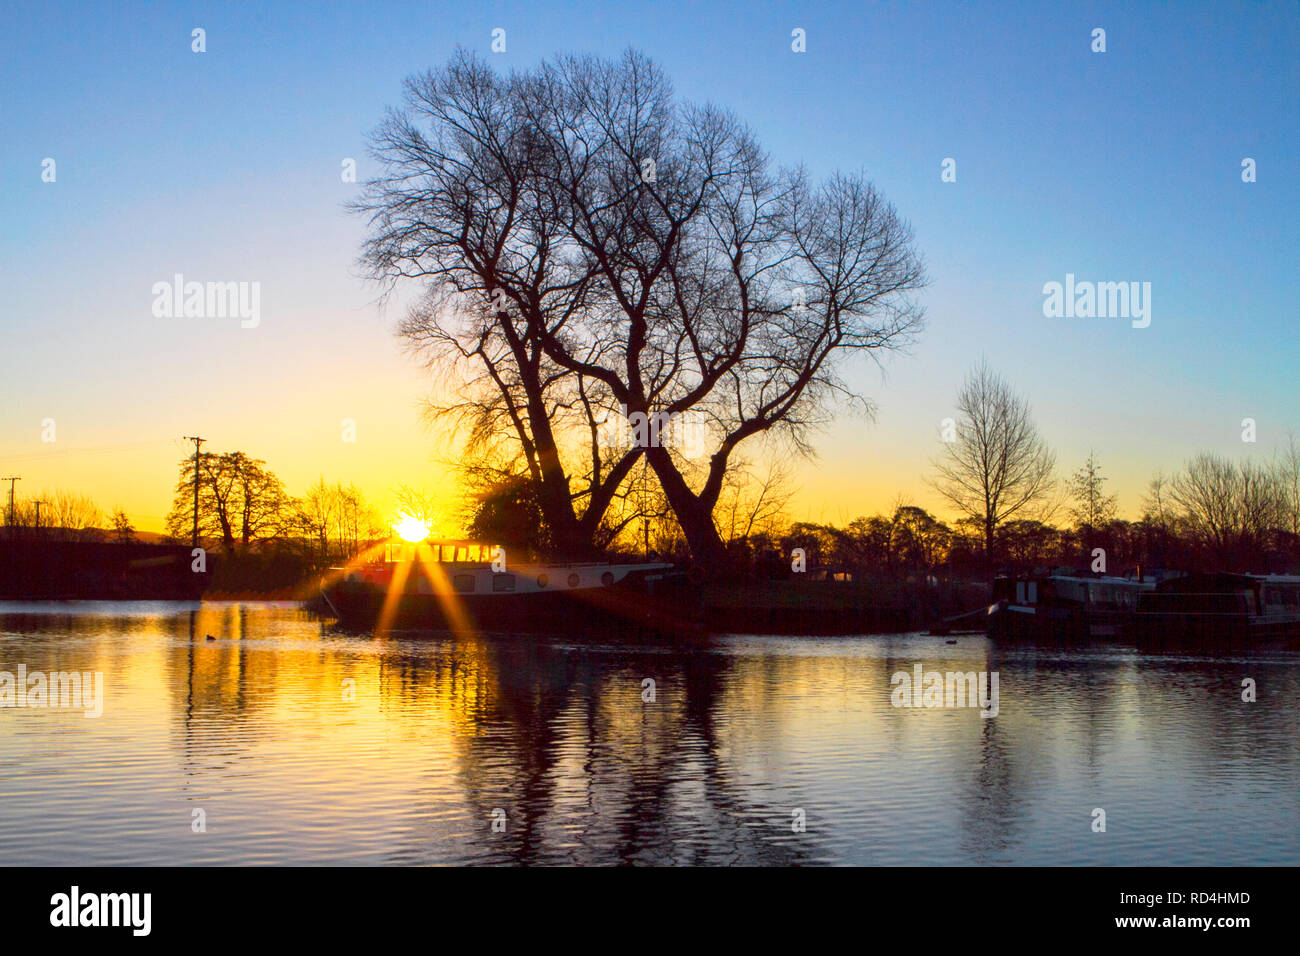 Rufford, West Lancashire, UK. Marina Sunrise. 17th January 2019.  A cool & crisp start to the day as a beautiful morning sunrise cascades over the canal boats moored on the picturesque Rufford Marina in West Lancashire.  Credit: Cernan Elias/Alamy Live News - Stock Image